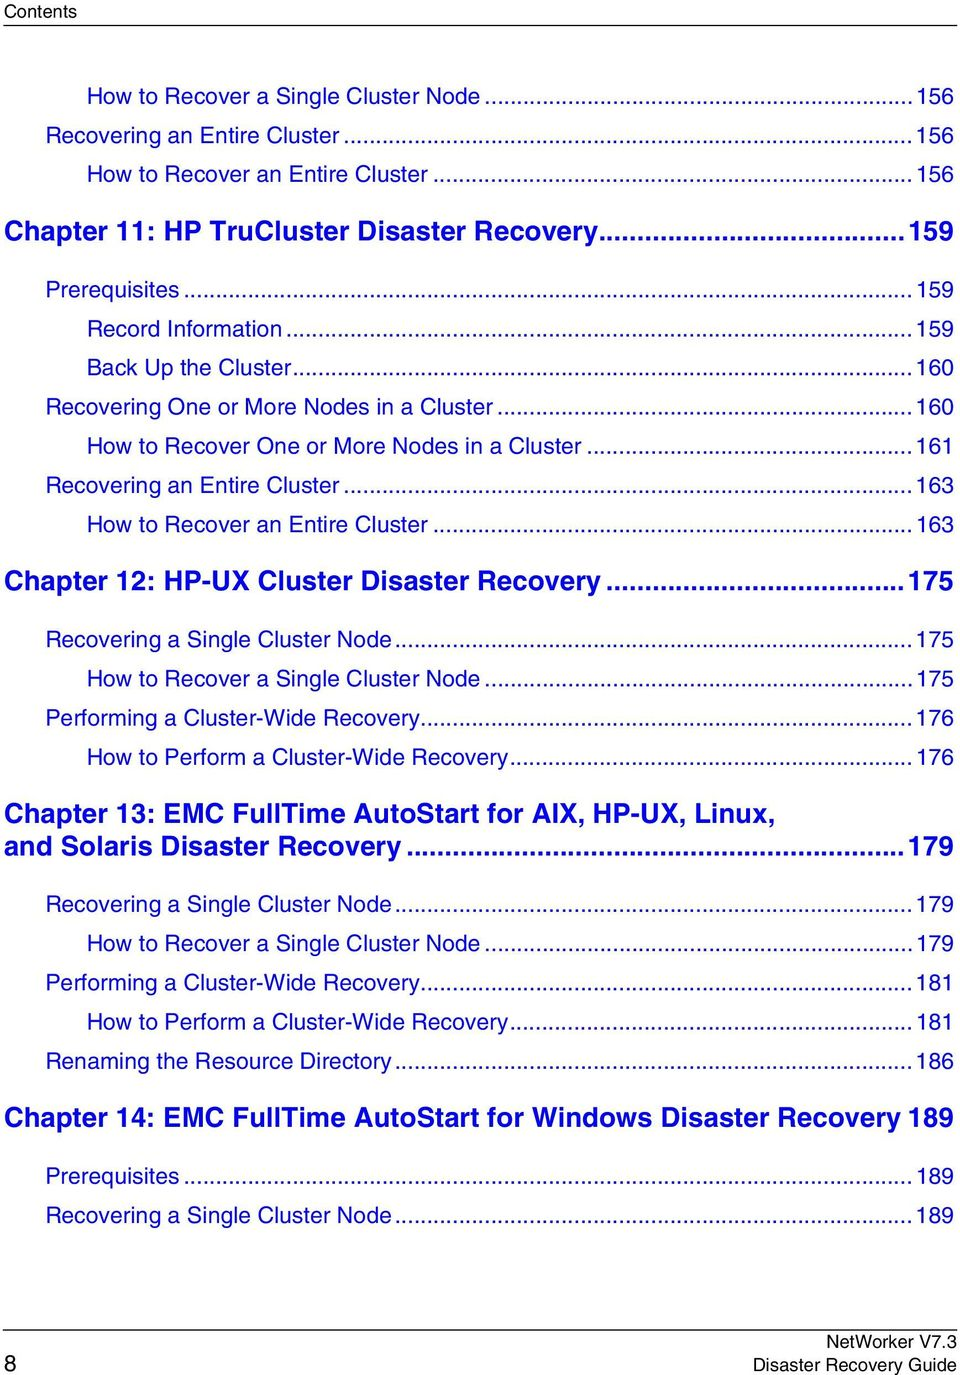 How to Recover an Entire Cluster...163. Chapter 12: HP-UX Cluster Disaster Recovery...175. Recovering a Single Cluster Node...175. How to Recover a Single Cluster Node...175. Performing a Cluster-Wide Recovery.